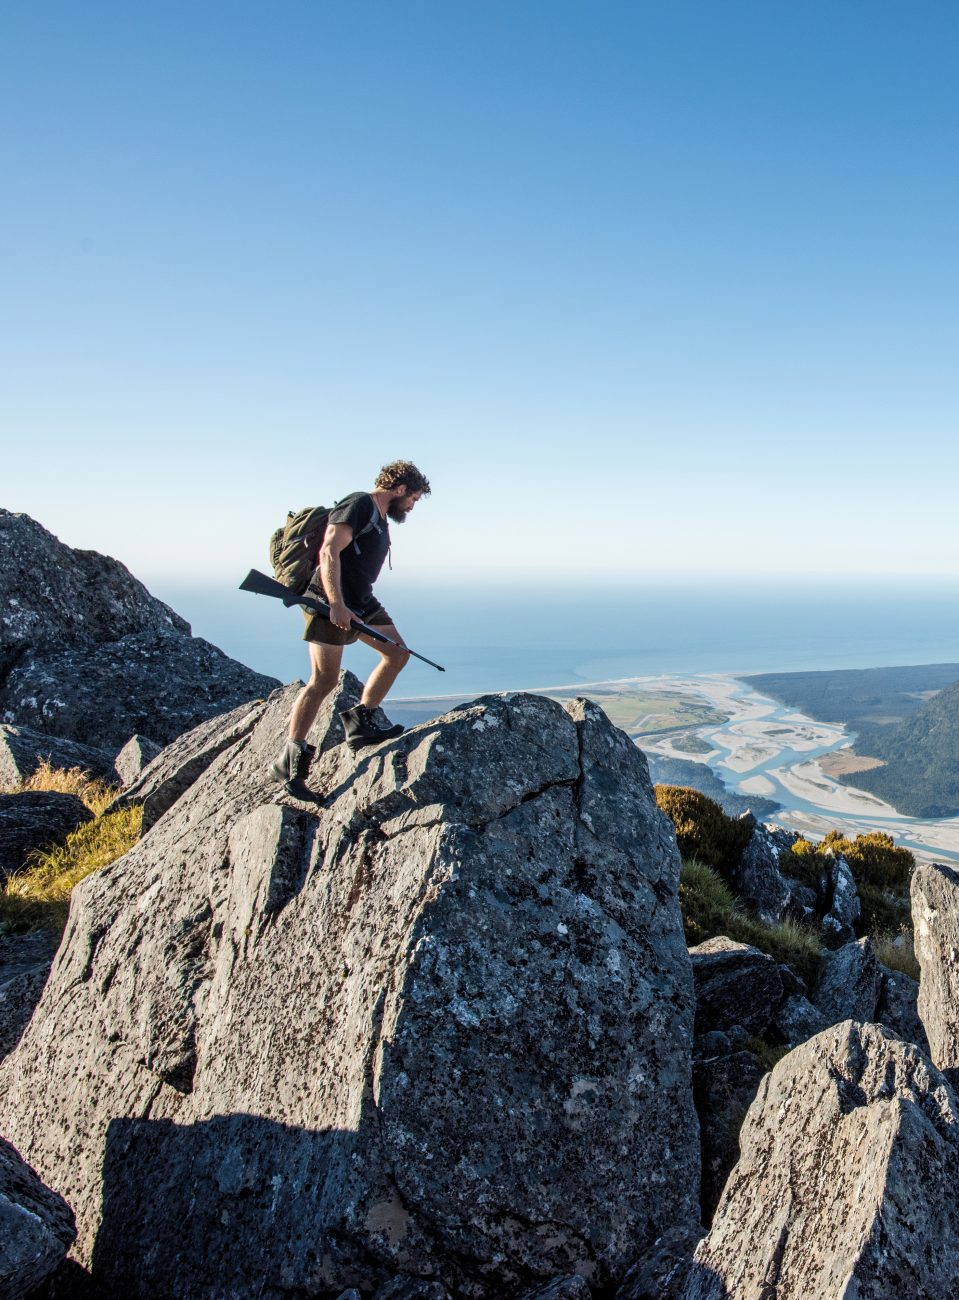 Mountains, forest and sea: Josh James walks high above the Haast River as it flows into the Tasman Sea in braids. The sandflies remain far below; these ranges are home only to mountain lakes and sure-footed chamois.